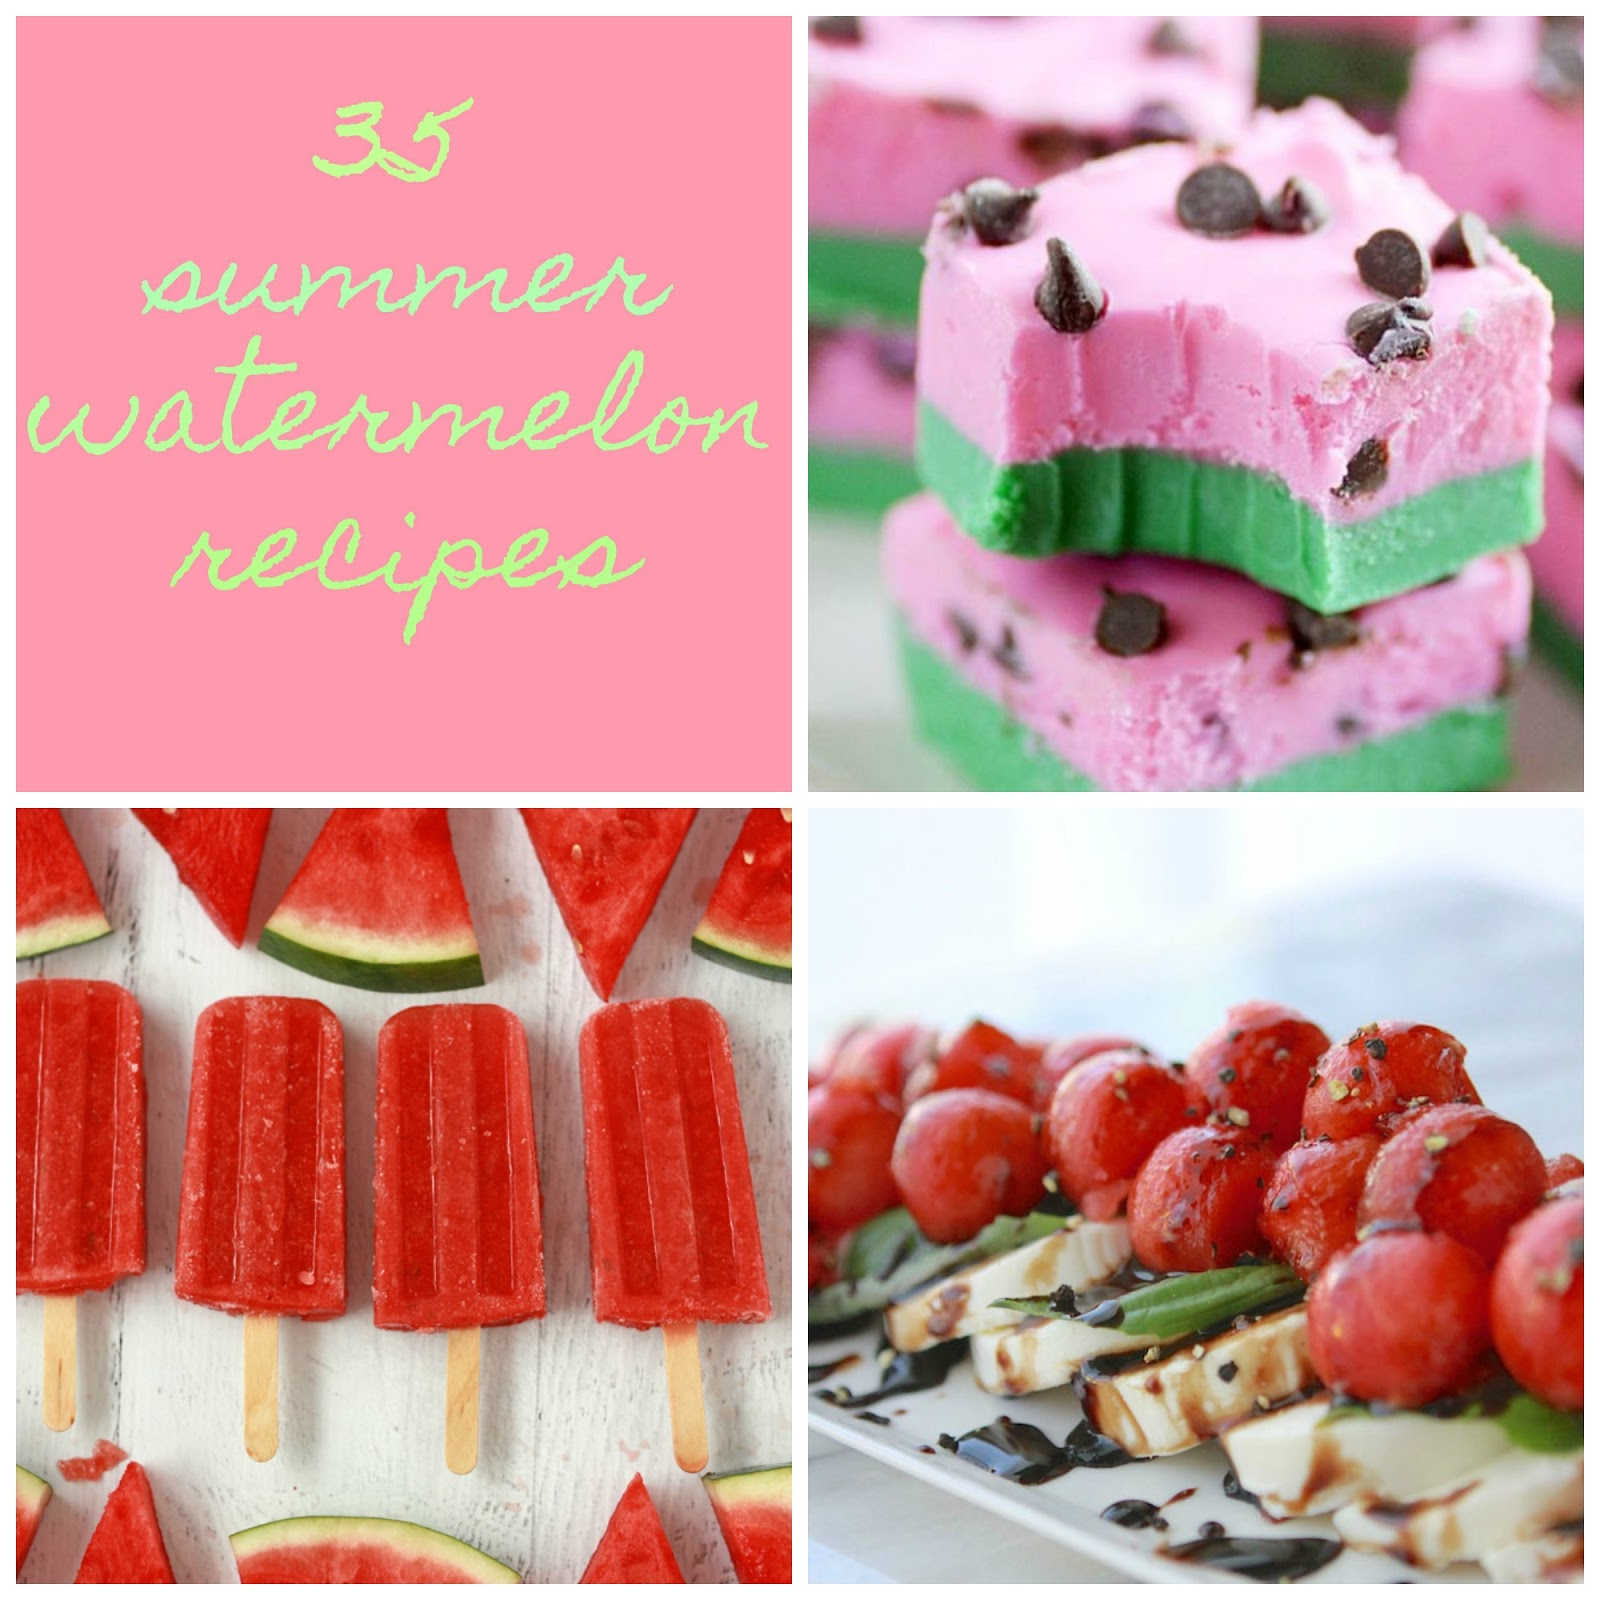 A bank of watermelon recipes for summer use filled with creativity and tastiness!